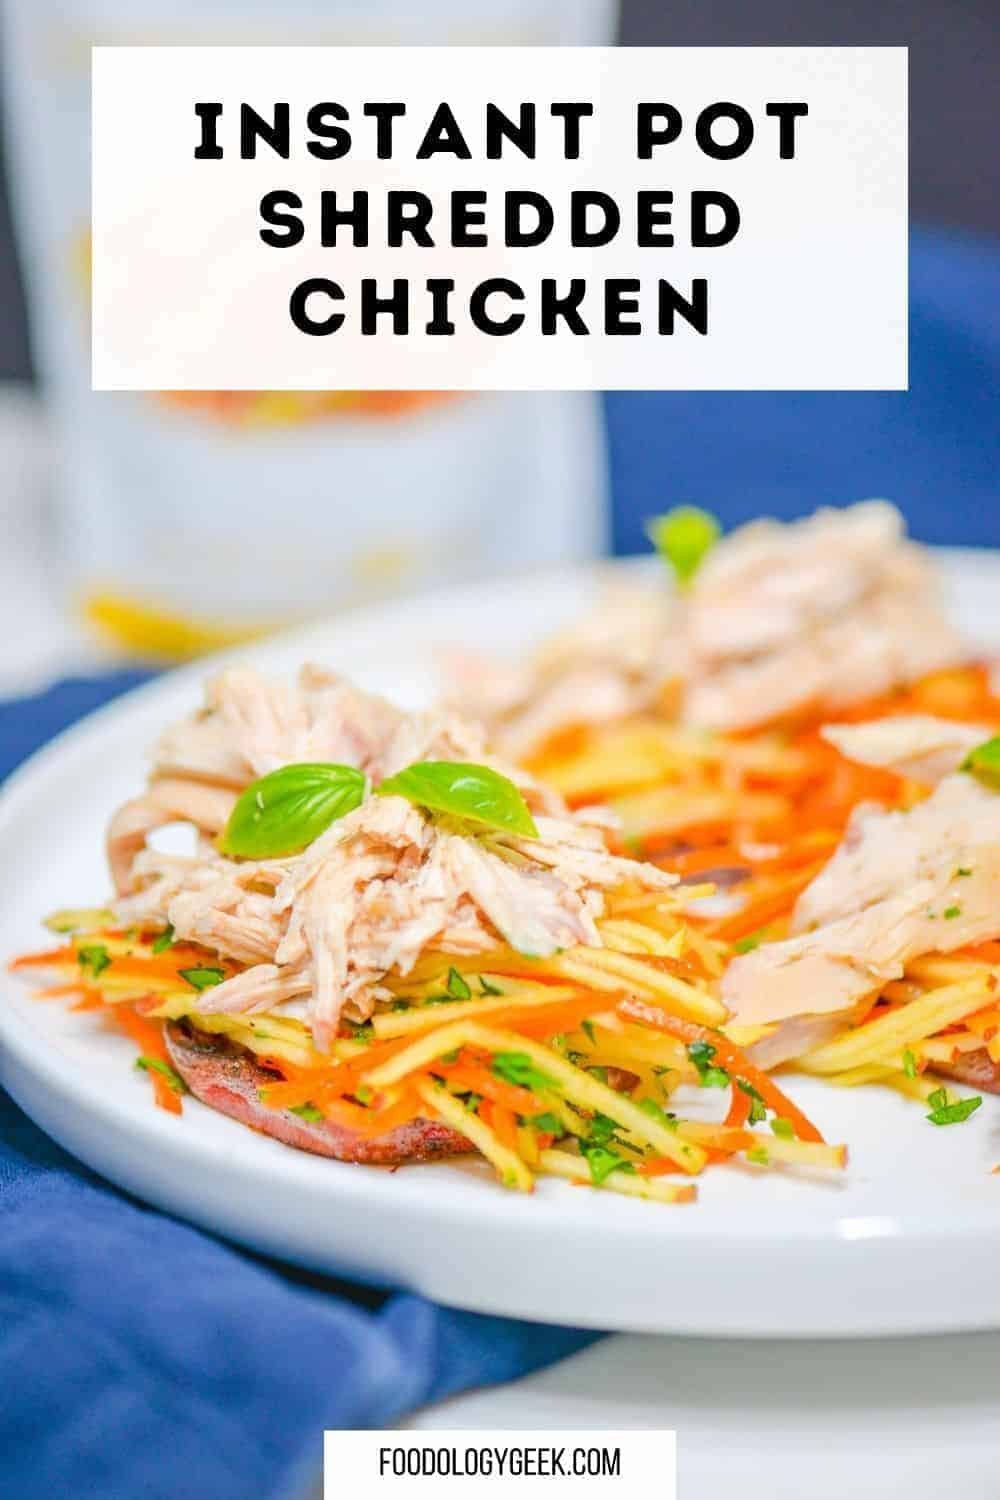 This Instant Pot shredded chicken recipe so easy. If you are looking for EASY KETO INSTANT POT RECIPES then this recipe is for you!! #eatcleanlivehappy #kevinsnaturalfoods #kevinsrecipechallenge